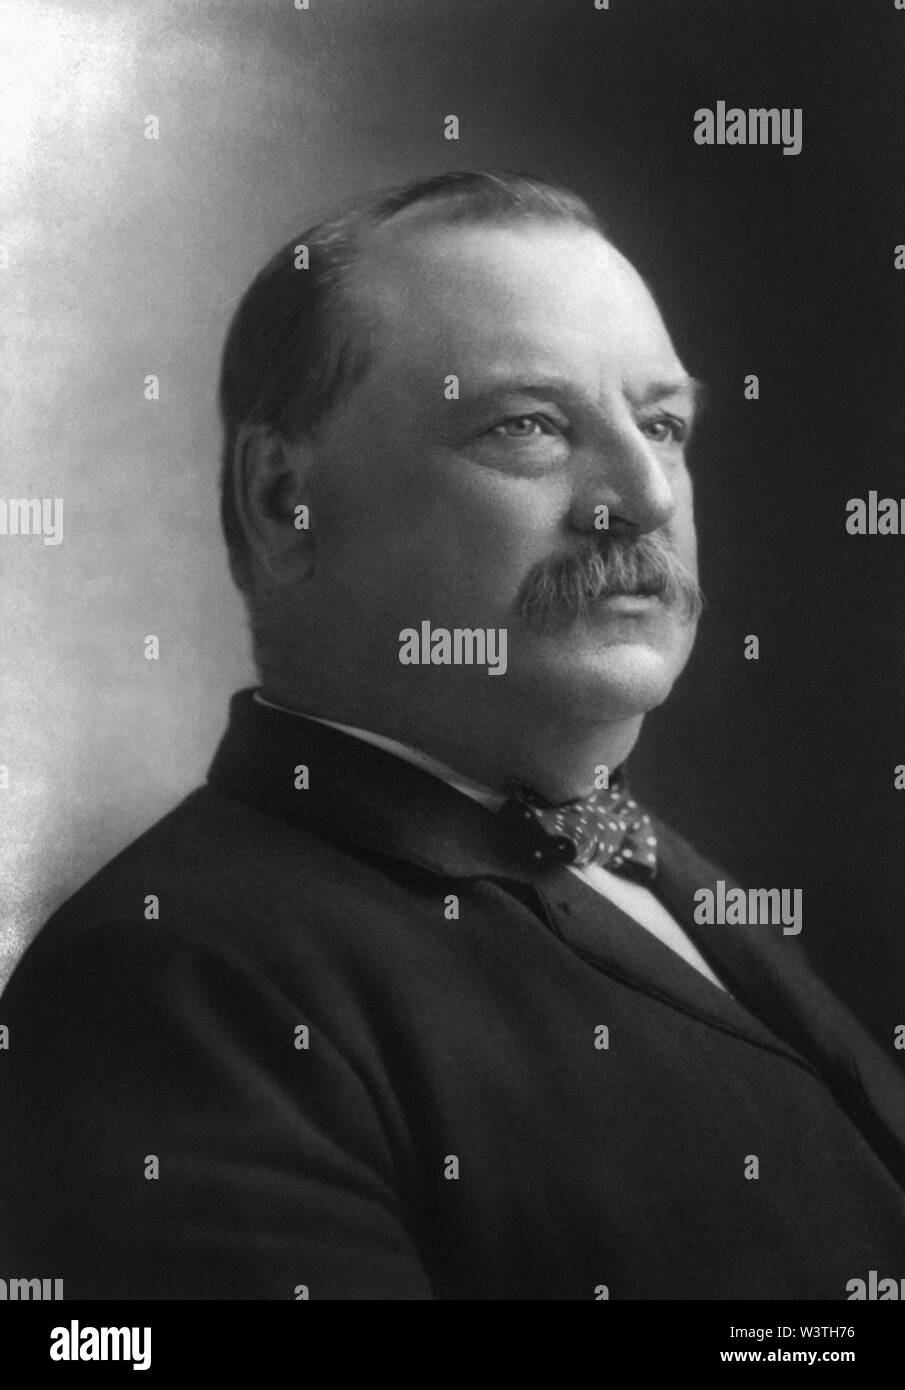 Grover Cleveland (1837-1908), 22nd and 24th President of the United States 1885–89 and 1893–97, Head and Shoulders Portrait, Photograph by N. Sarony, 1892 - Stock Image